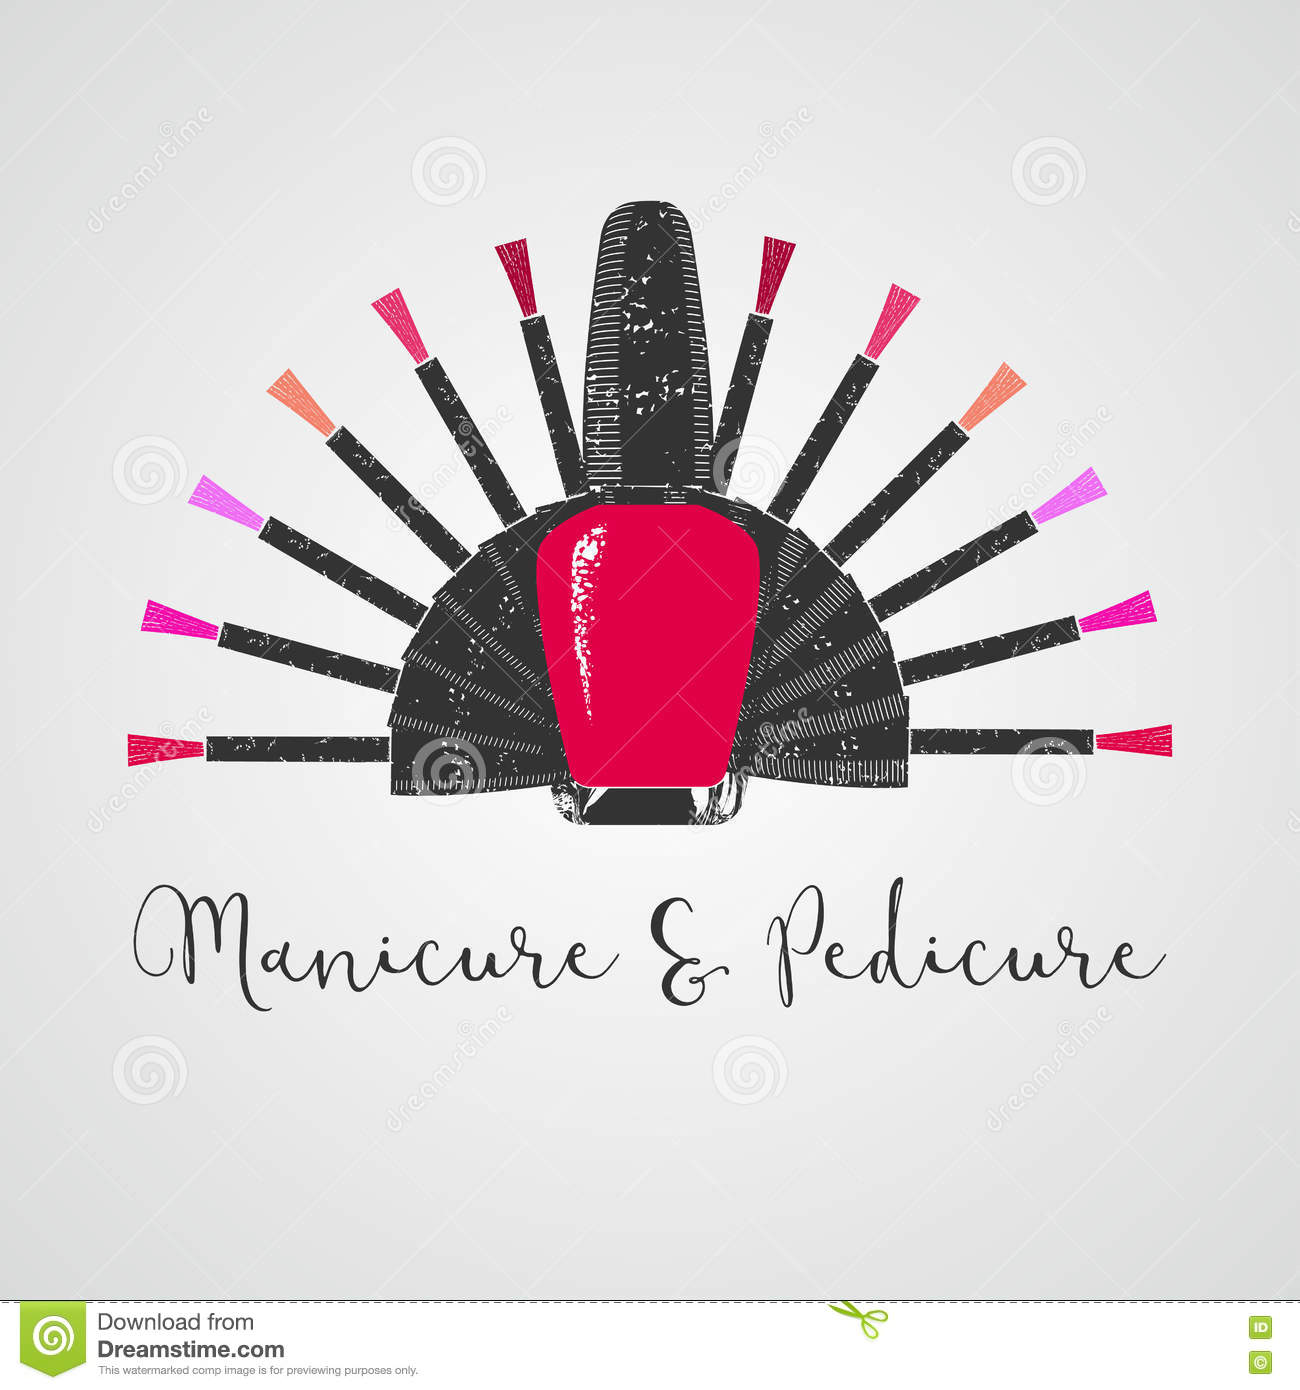 cosmetician cartoons illustrations amp vector stock images